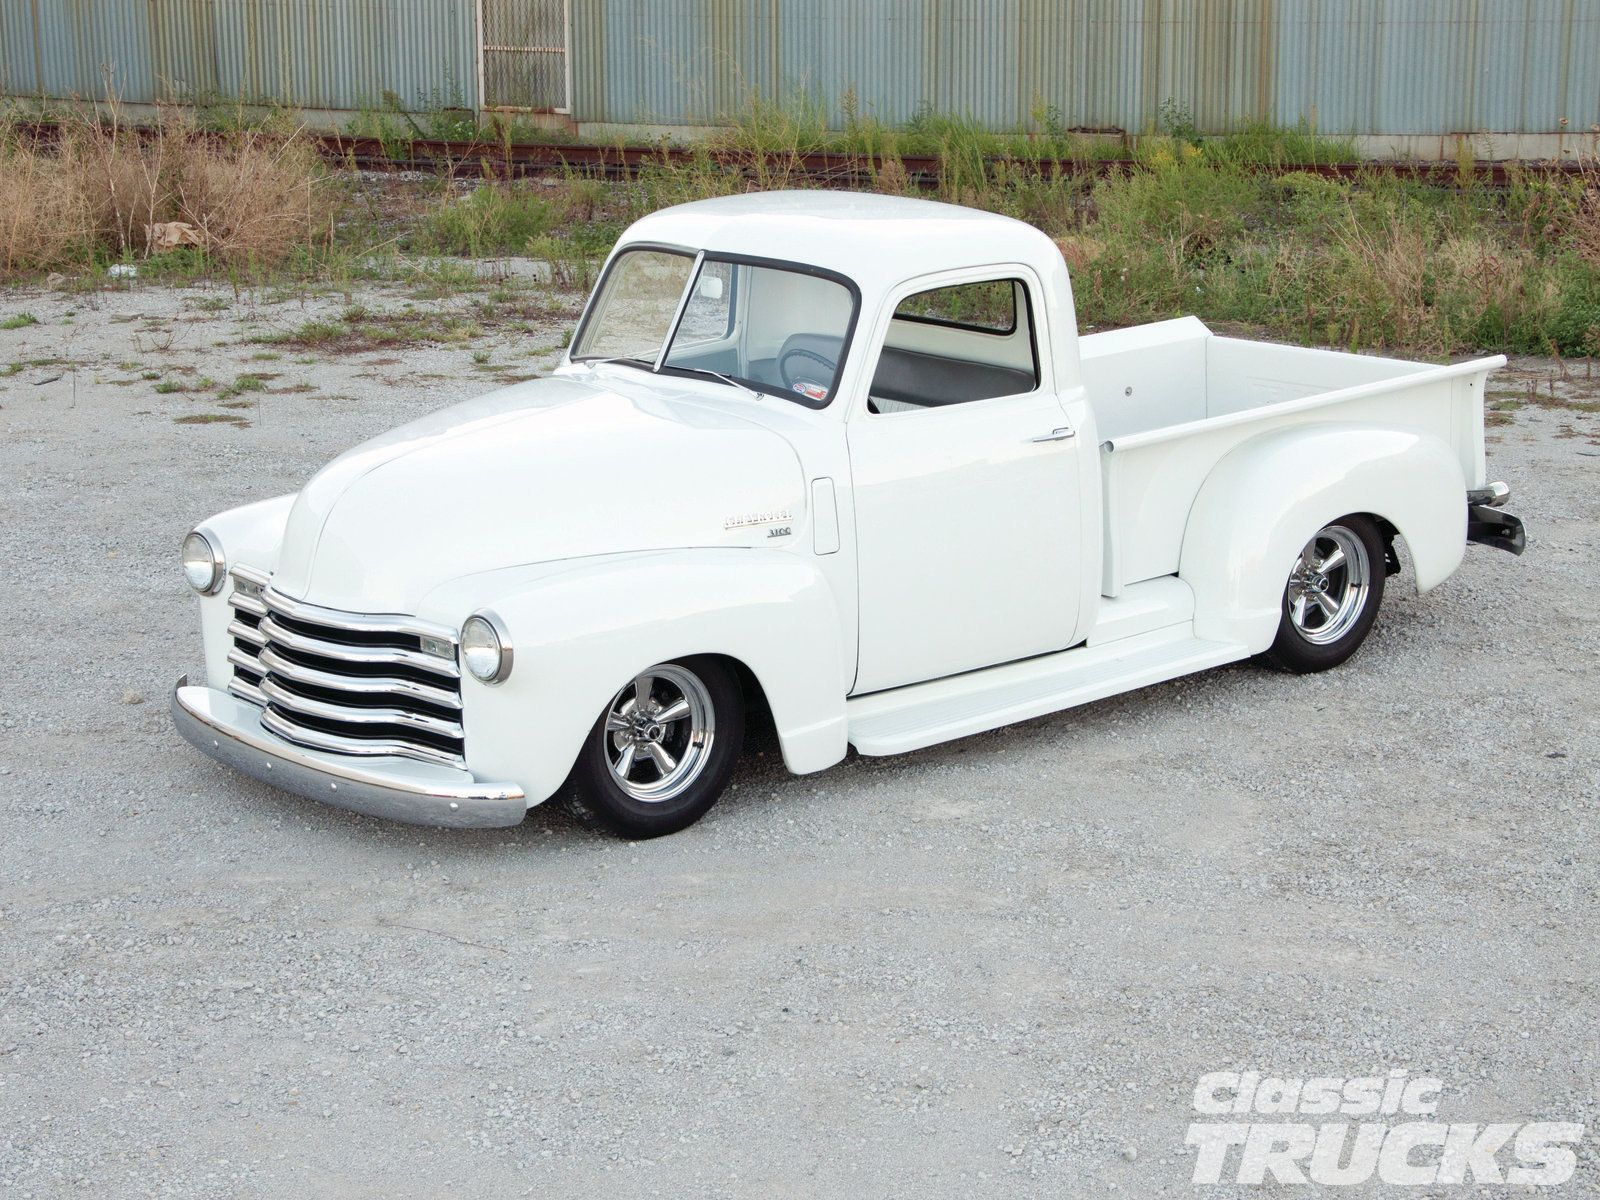 1302clt 11 O 1955 Ford F 100 Vs 1950 Chevrolet Pickup Front